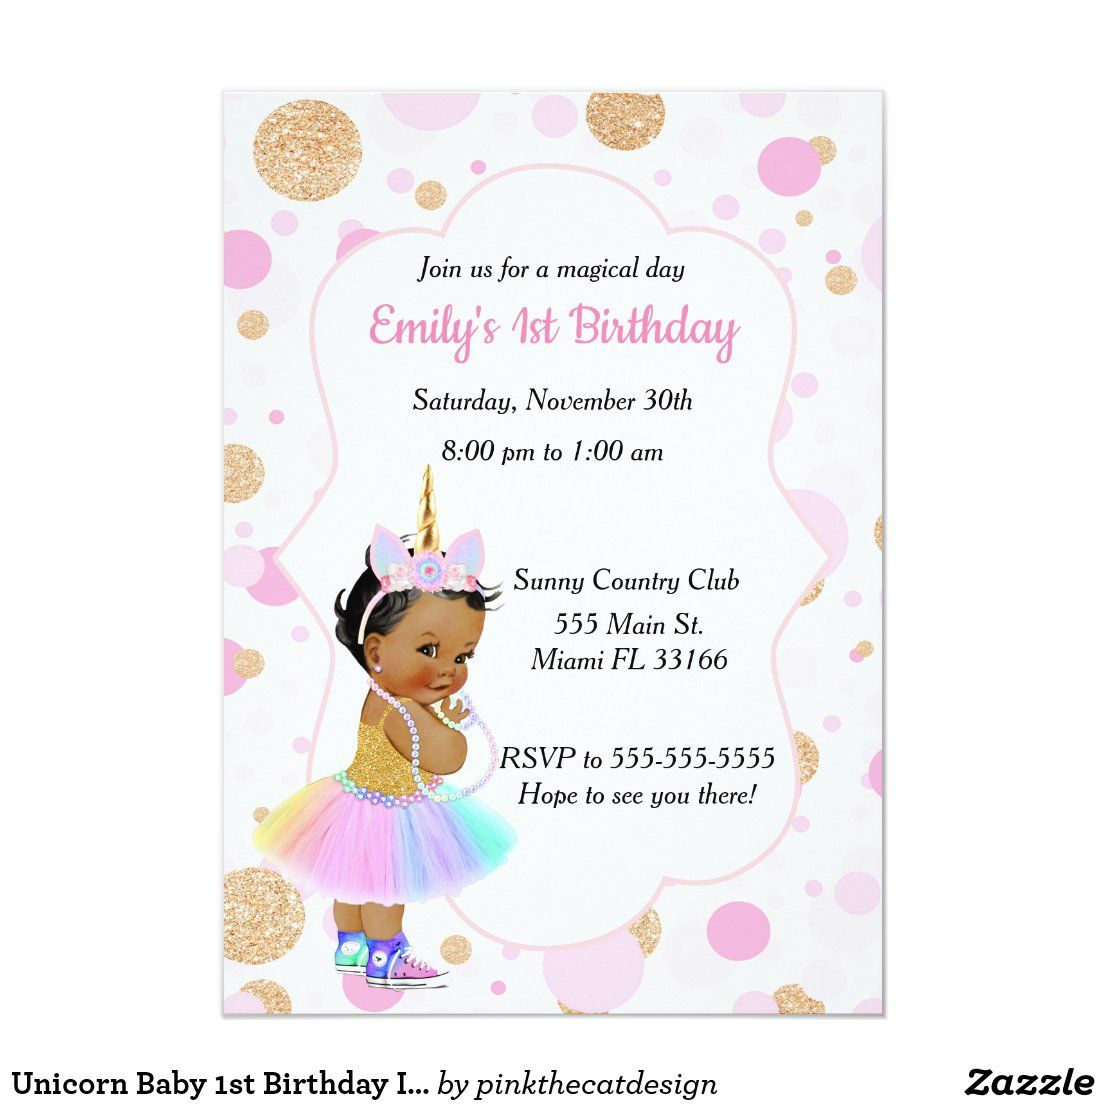 Unicorn Baby 1st Birthday Invitation 3 in